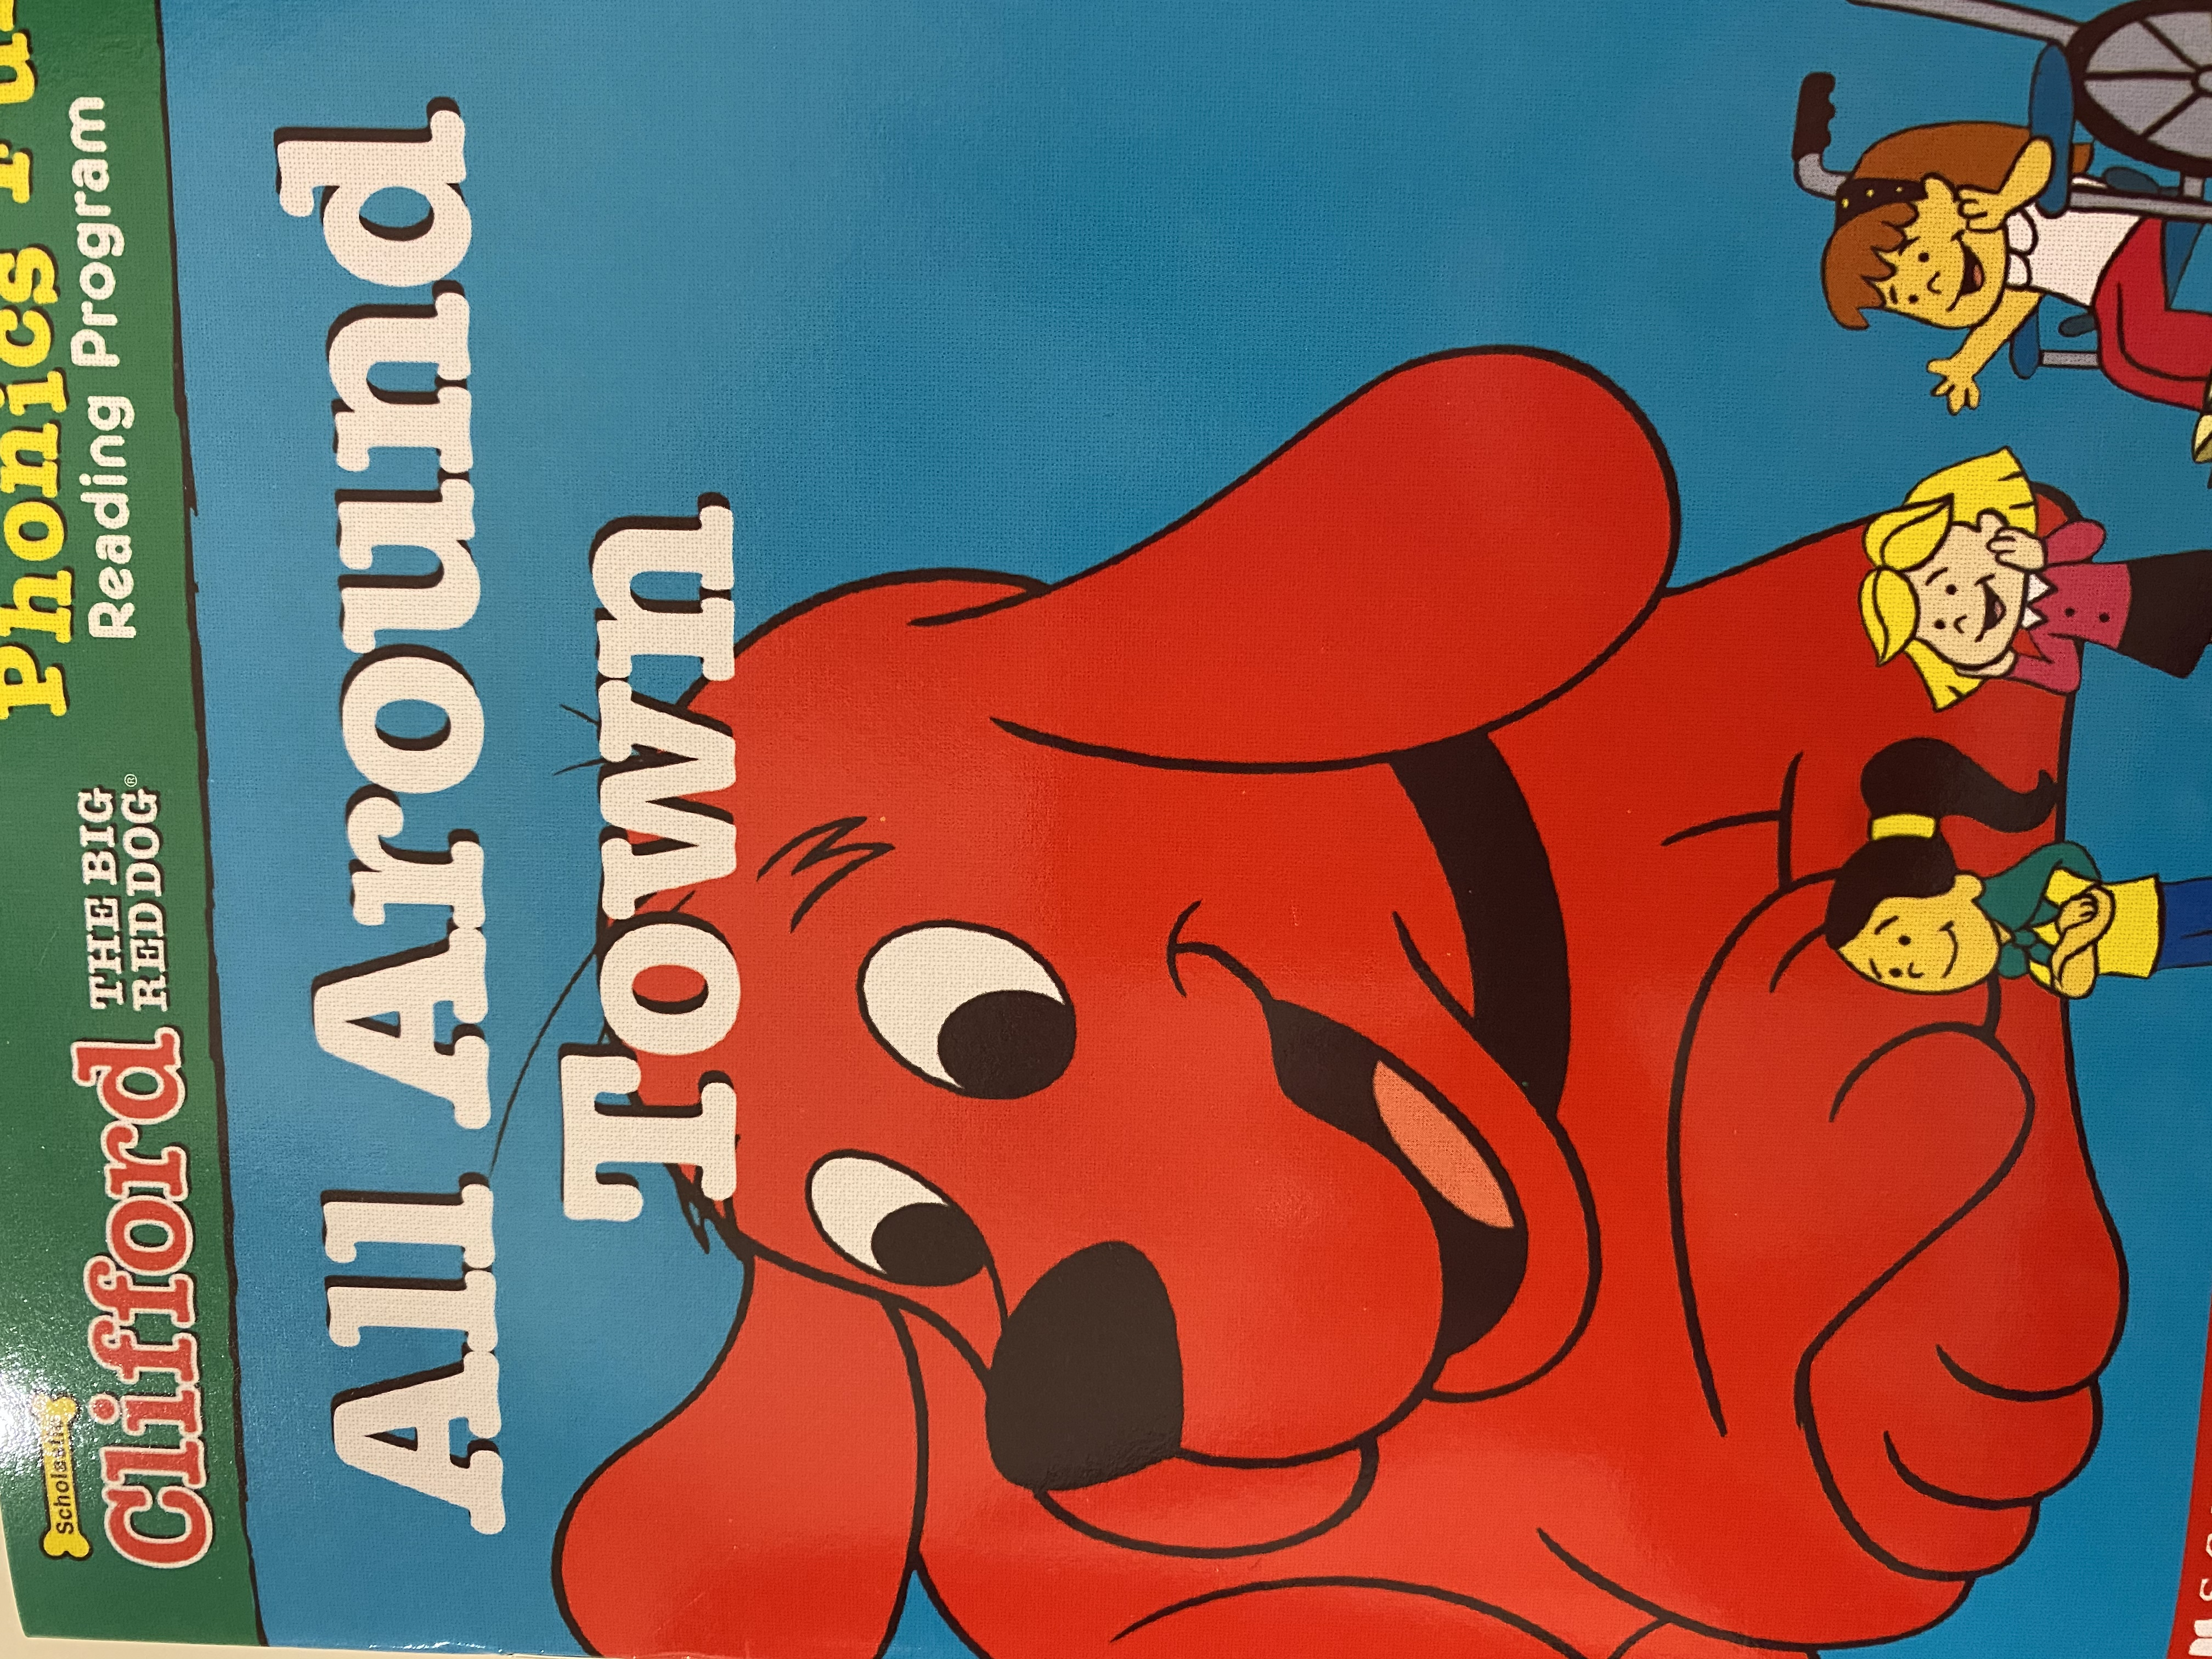 S3-127/ all around town/ Clifford the big red dog/ pack 4